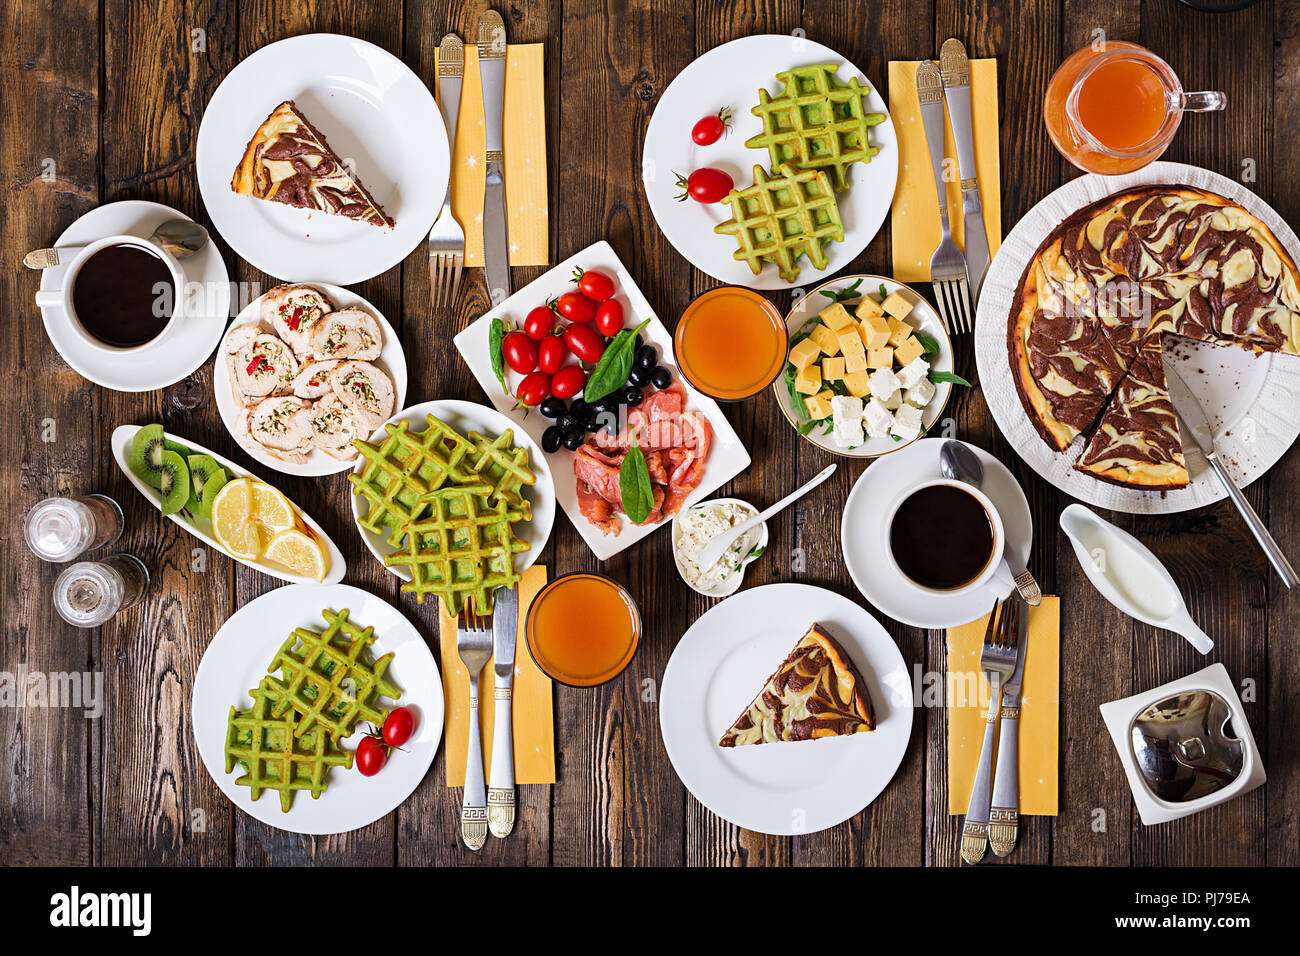 Breakfast food table. Festive brunch set, meal variety with spinach waffles, salmon, cheese, olives, chicken rolls and cheesecake. Top view. Flat lay Stock Photo